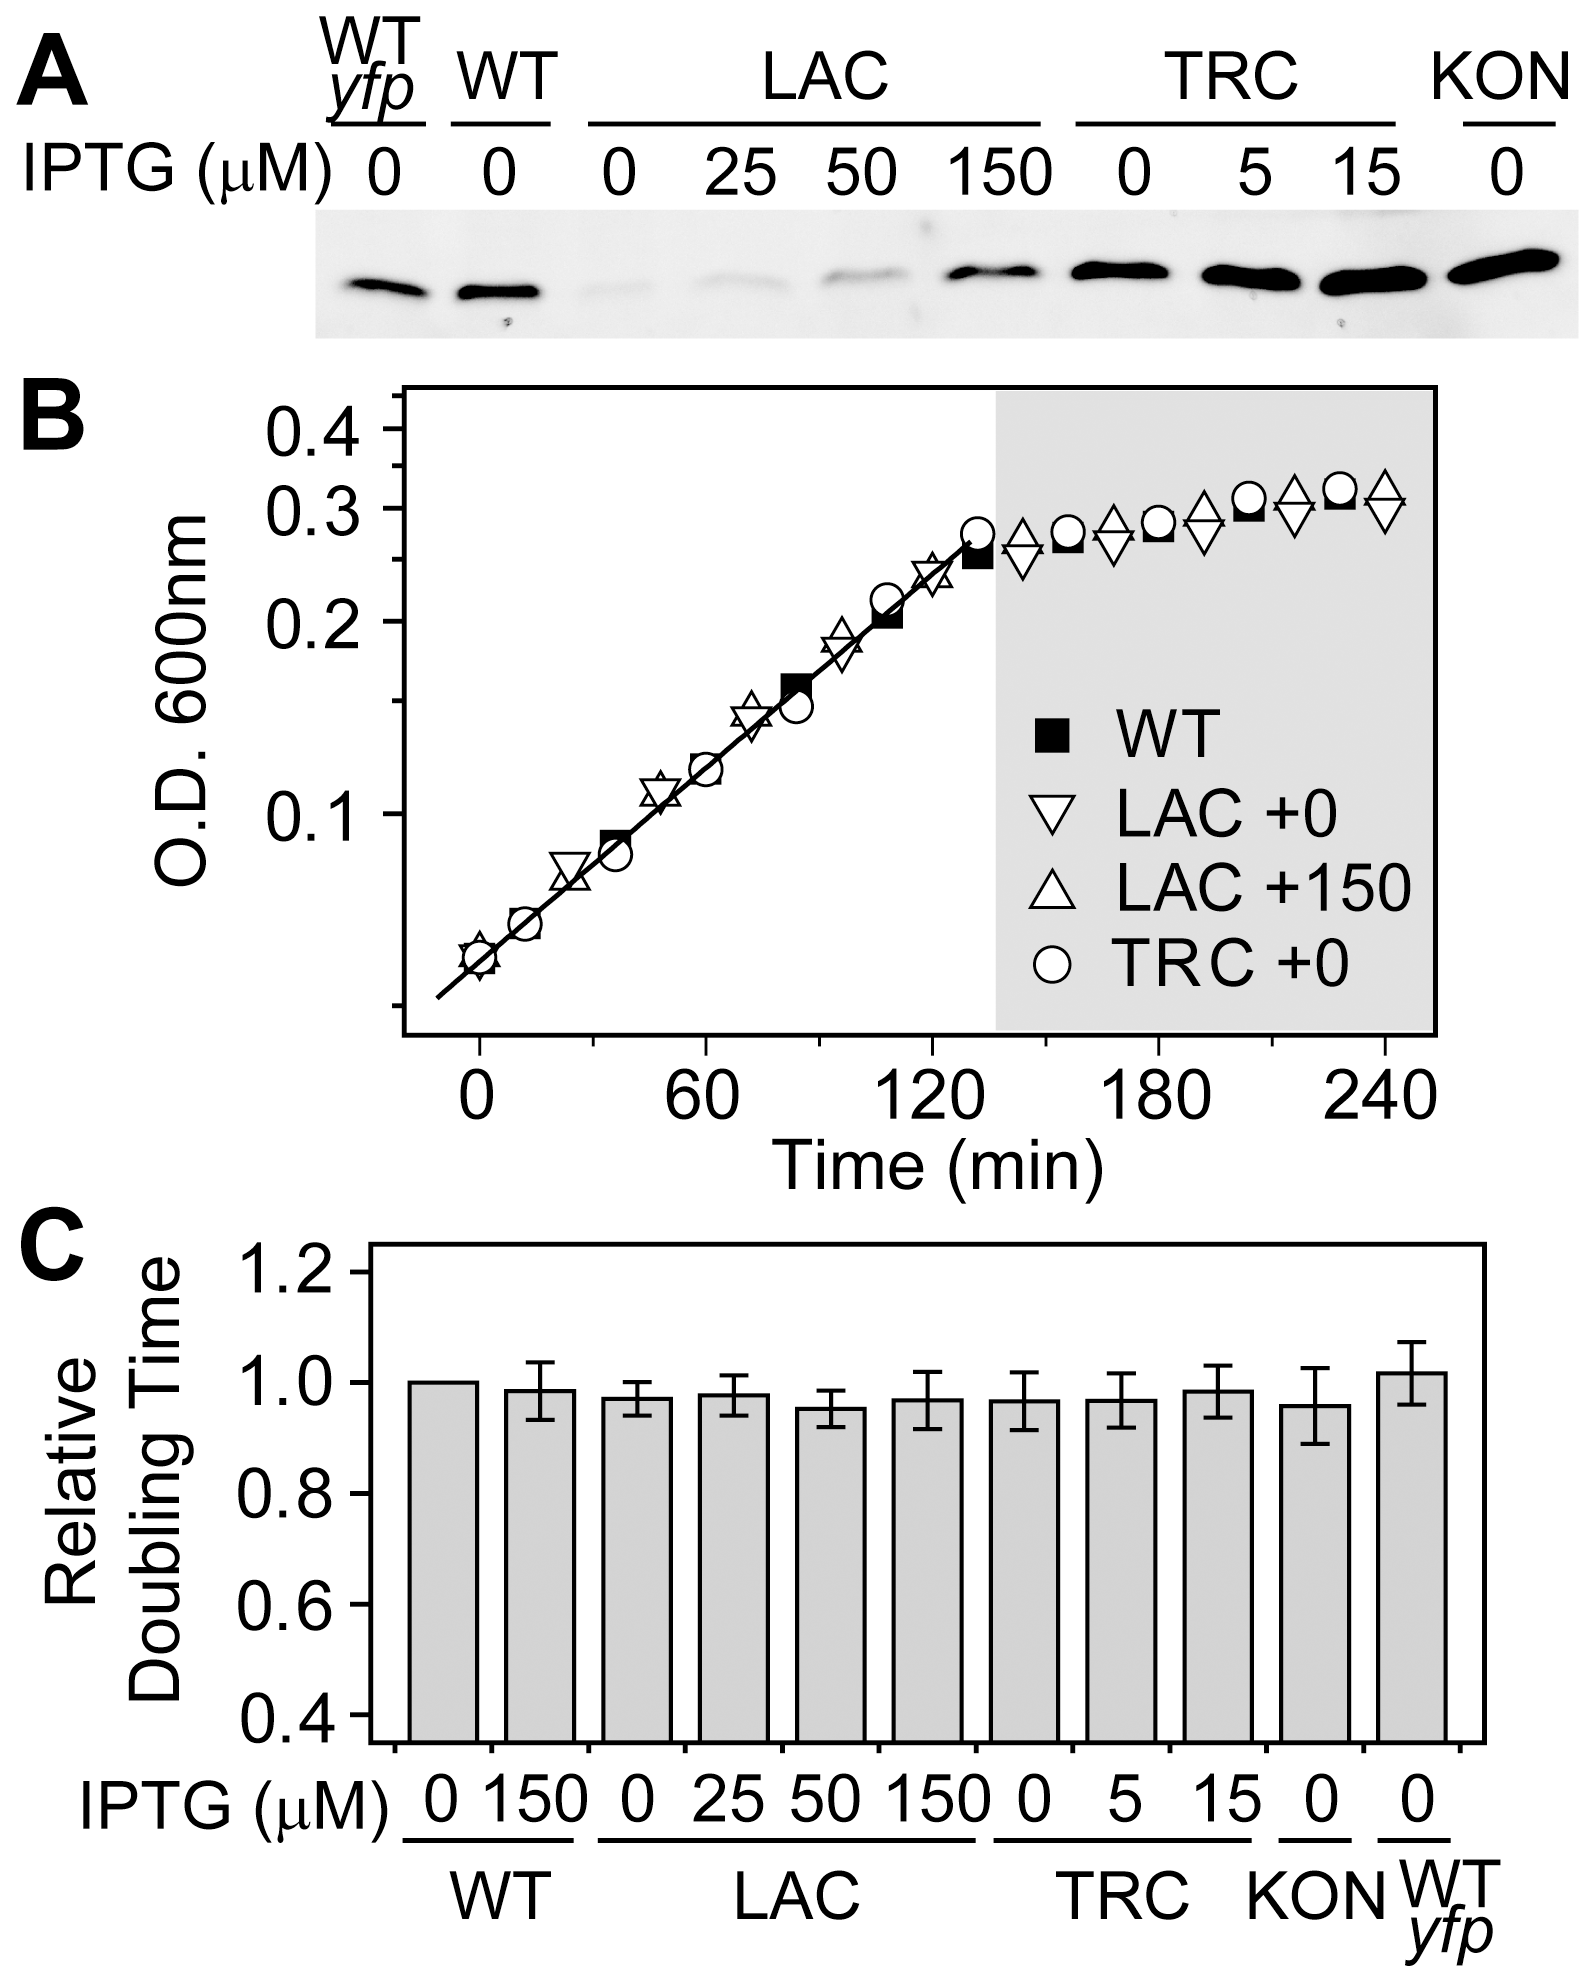 Growth rates in batch cultures are similar for the autoregulated WT and constitutive strains.